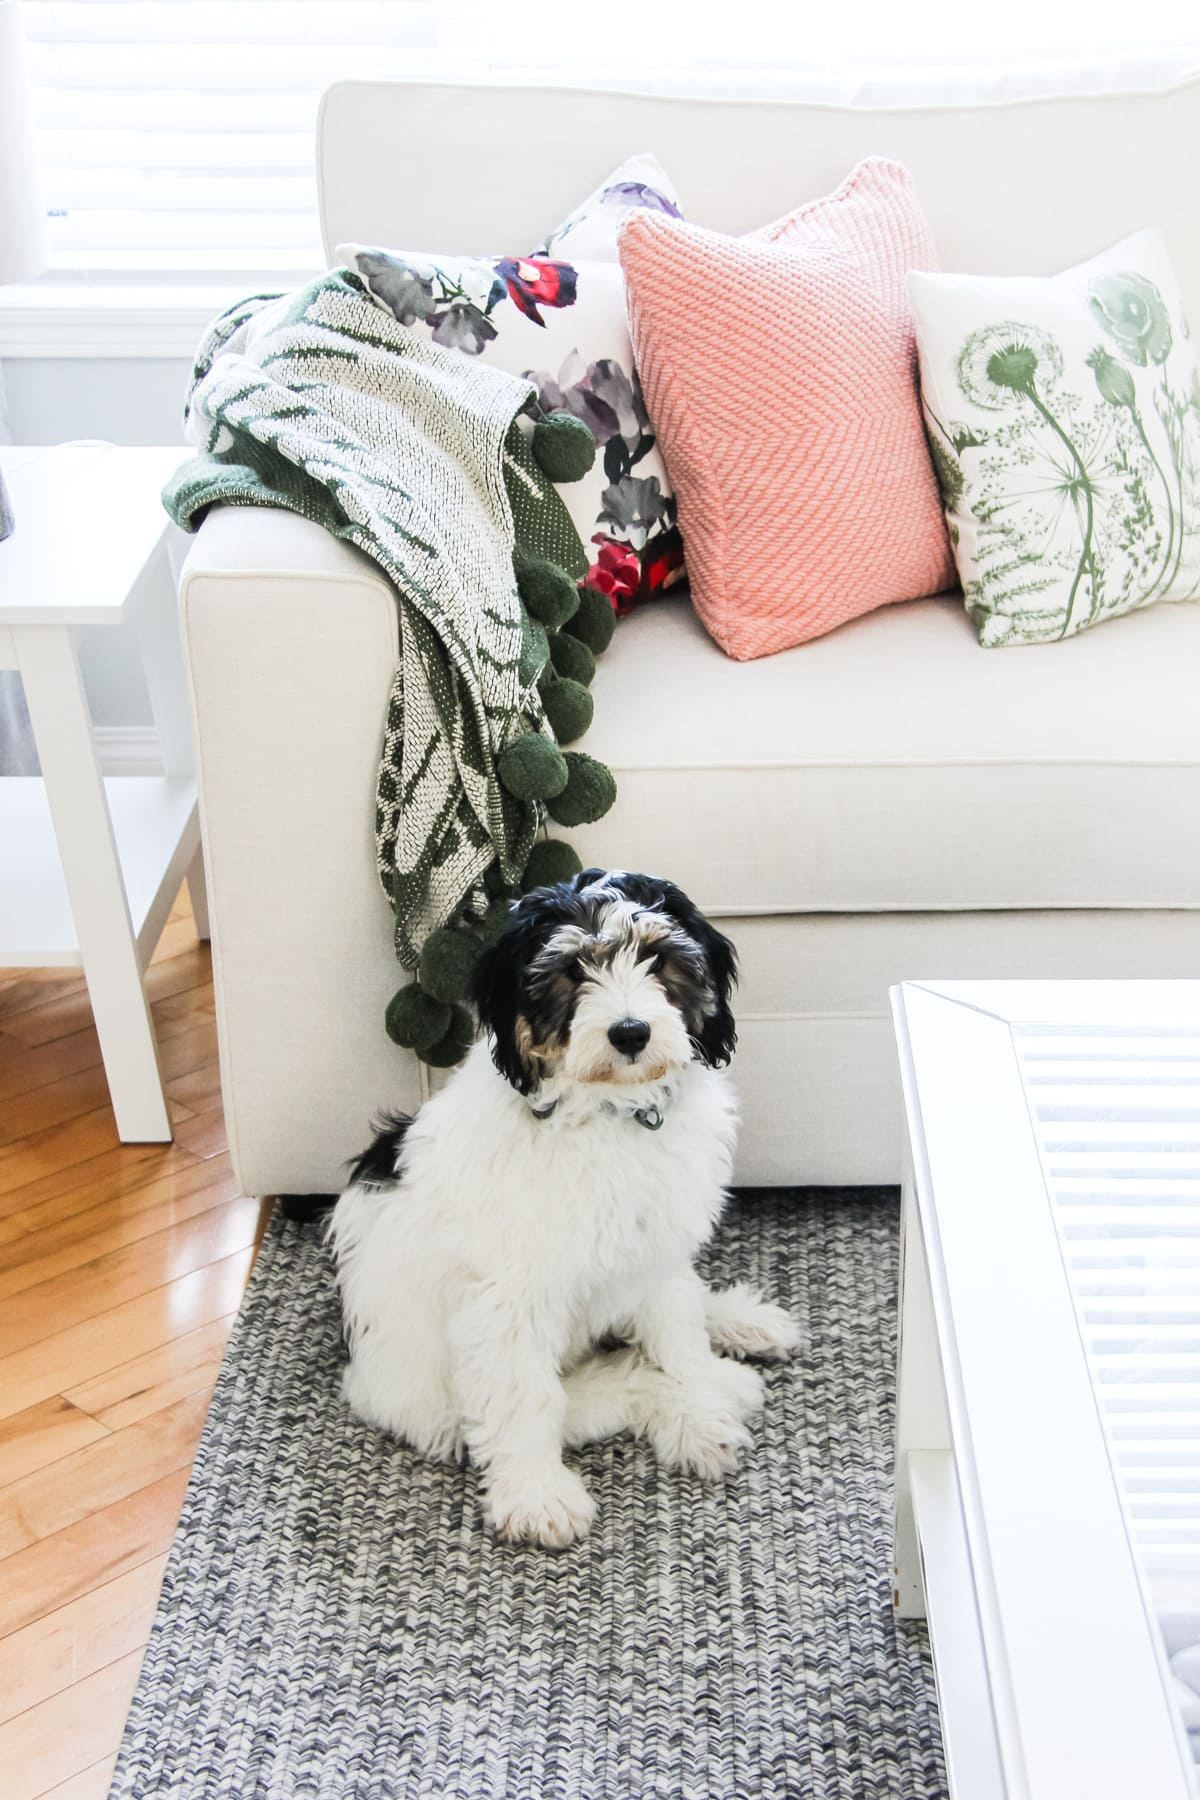 a picture of a white sectional couch in a living room. with throw pillows and blankets. in front of the couch is a black and white puppy